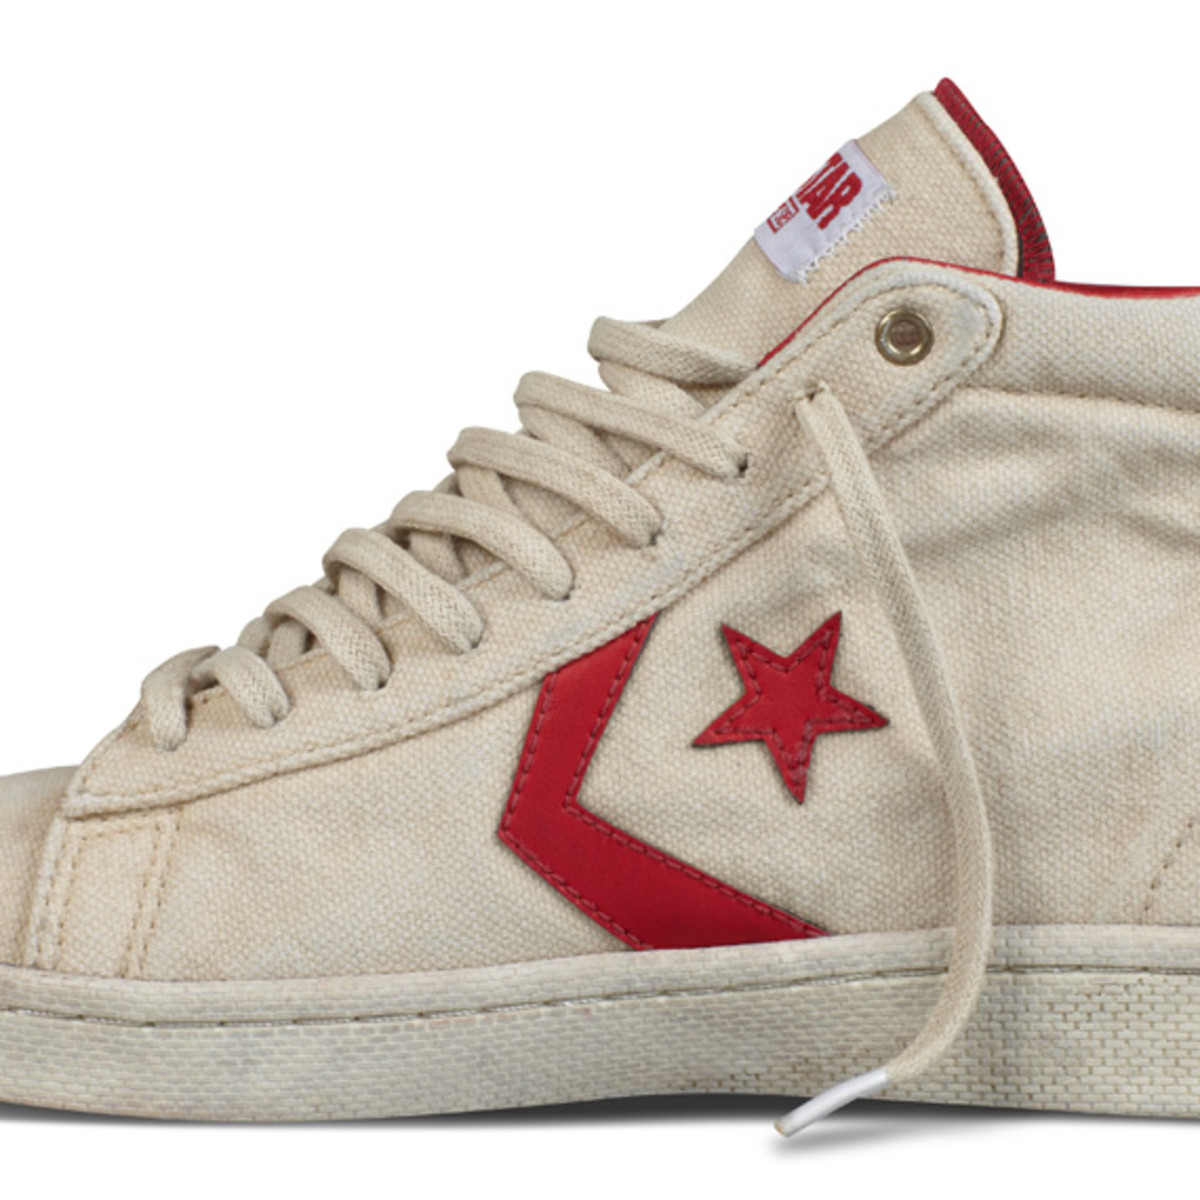 clot-converse-first-string-pro-leather-hi-09